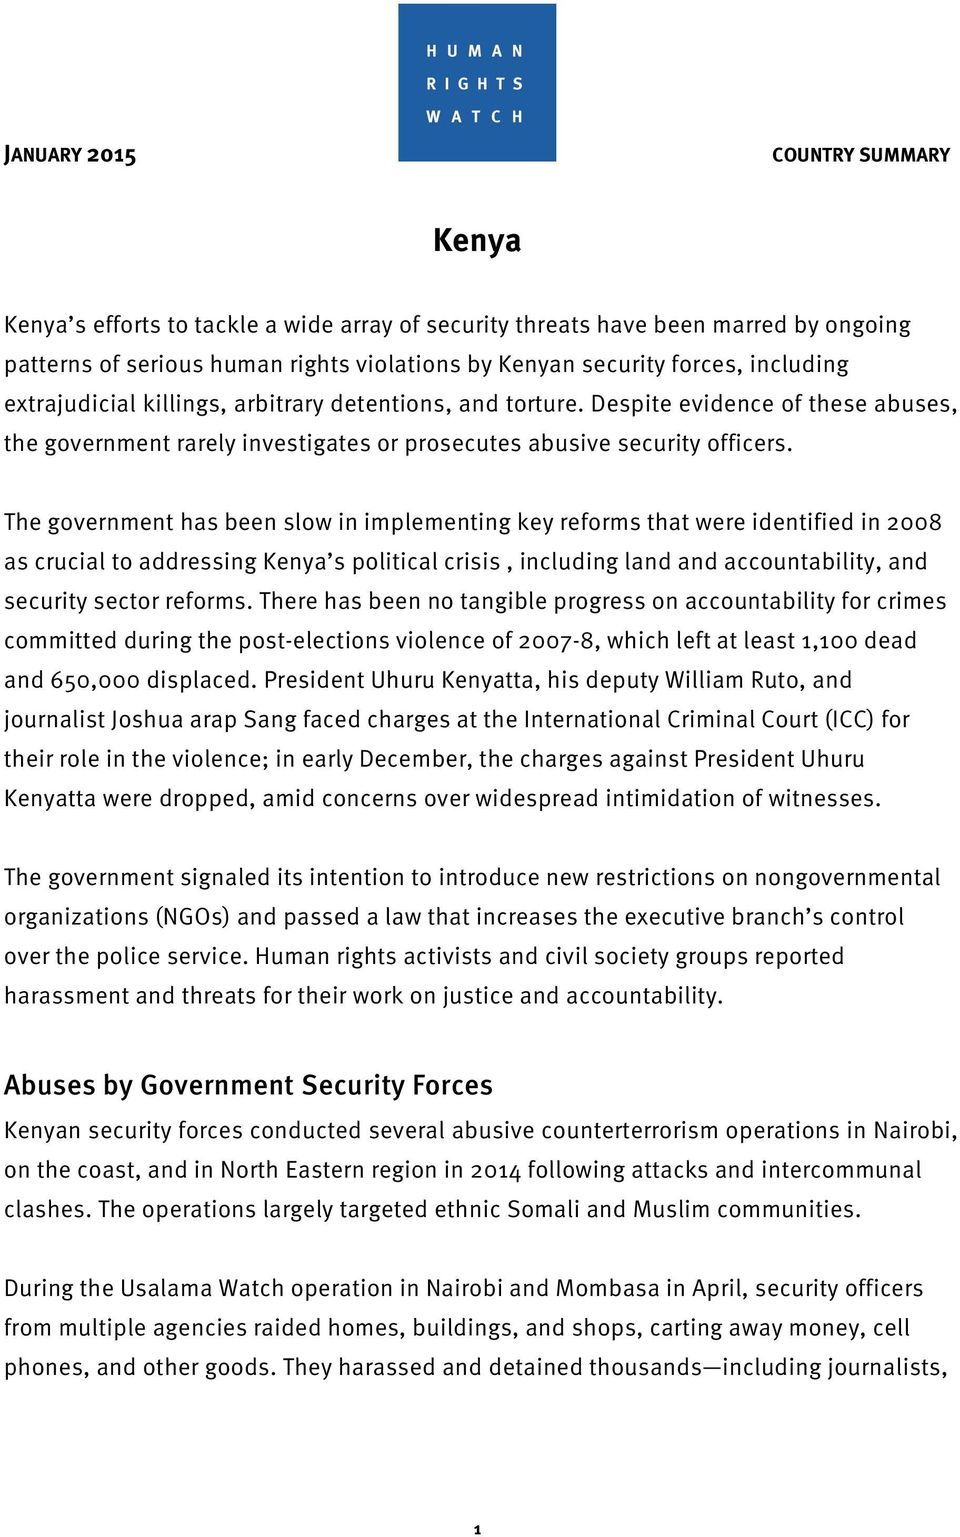 The government has been slow in implementing key reforms that were identified in 2008 as crucial to addressing Kenya s political crisis, including land and accountability, and security sector reforms.